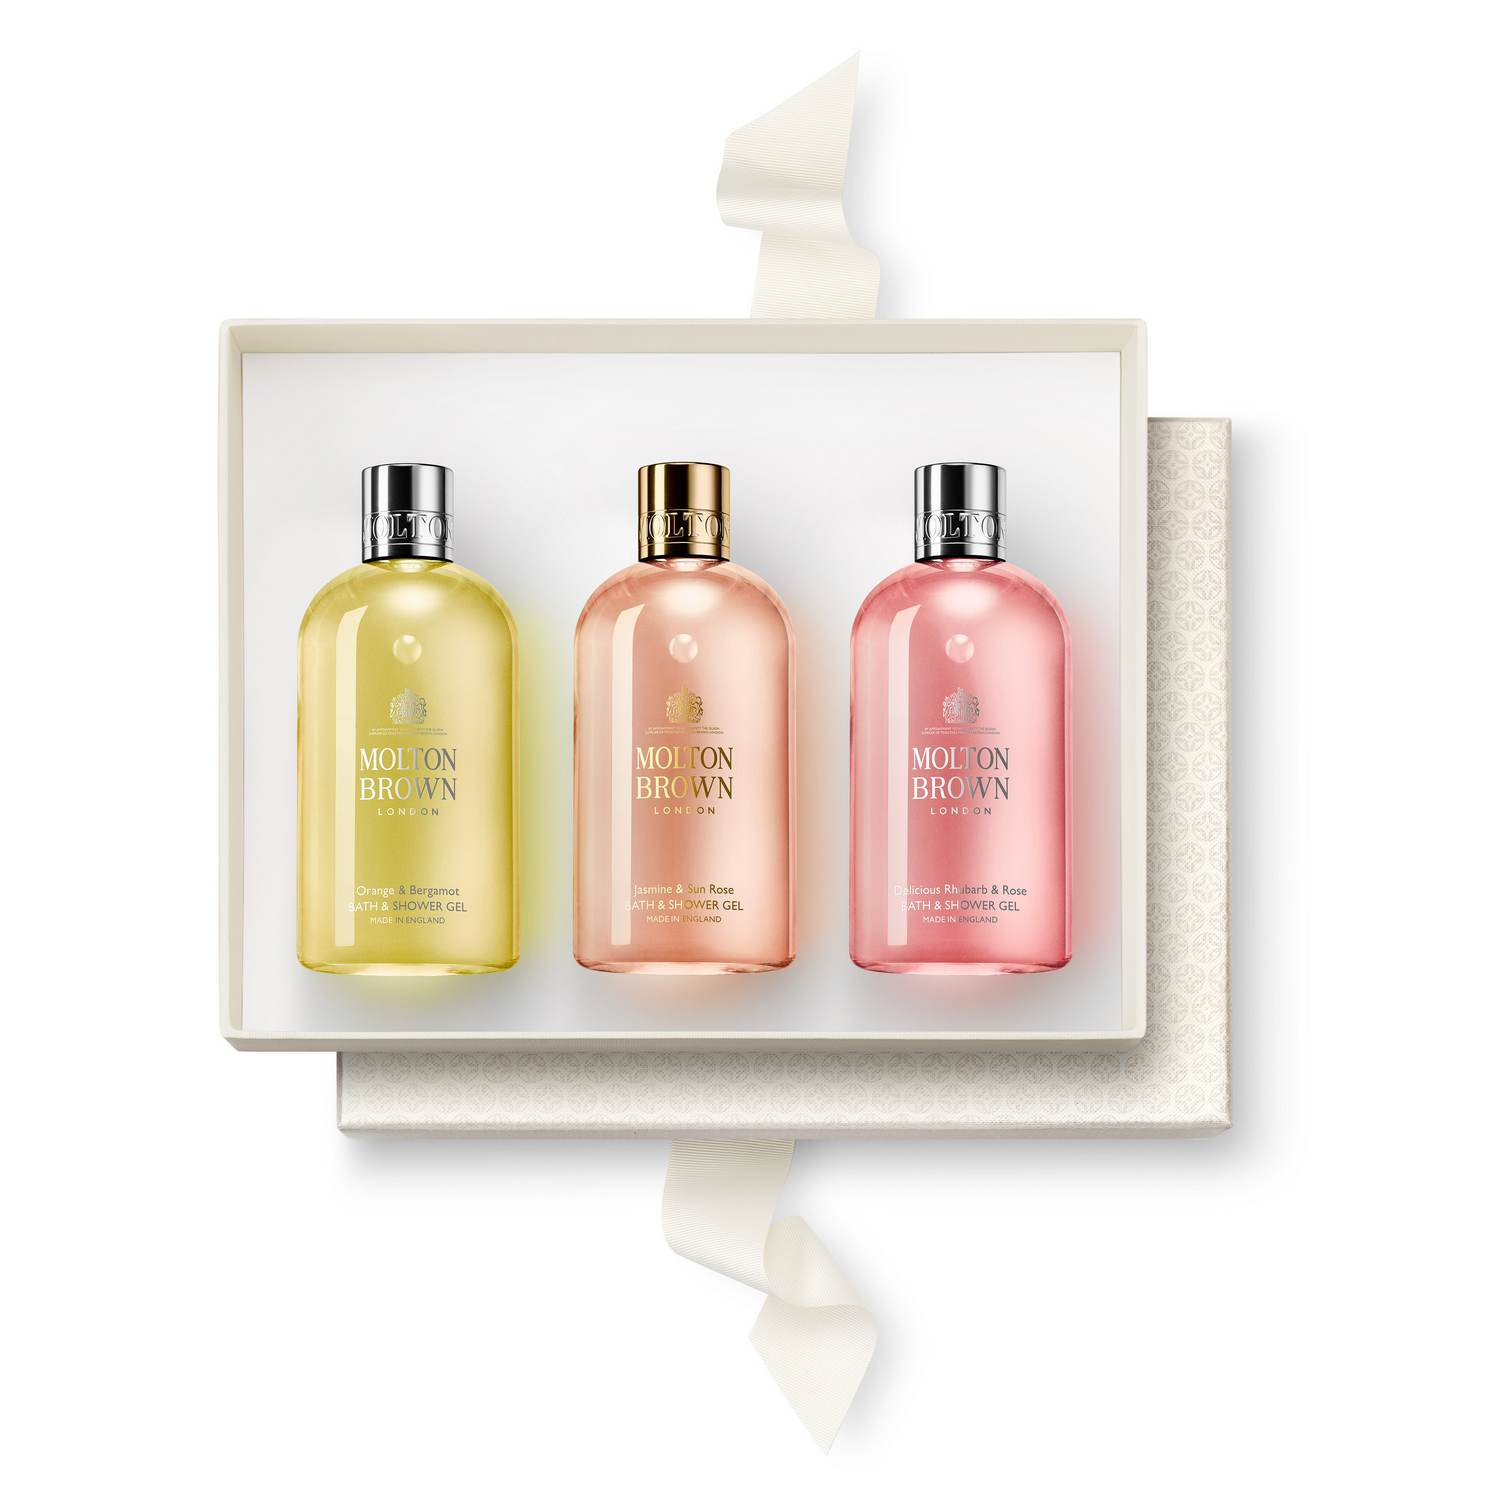 bath gift set for mother's Day